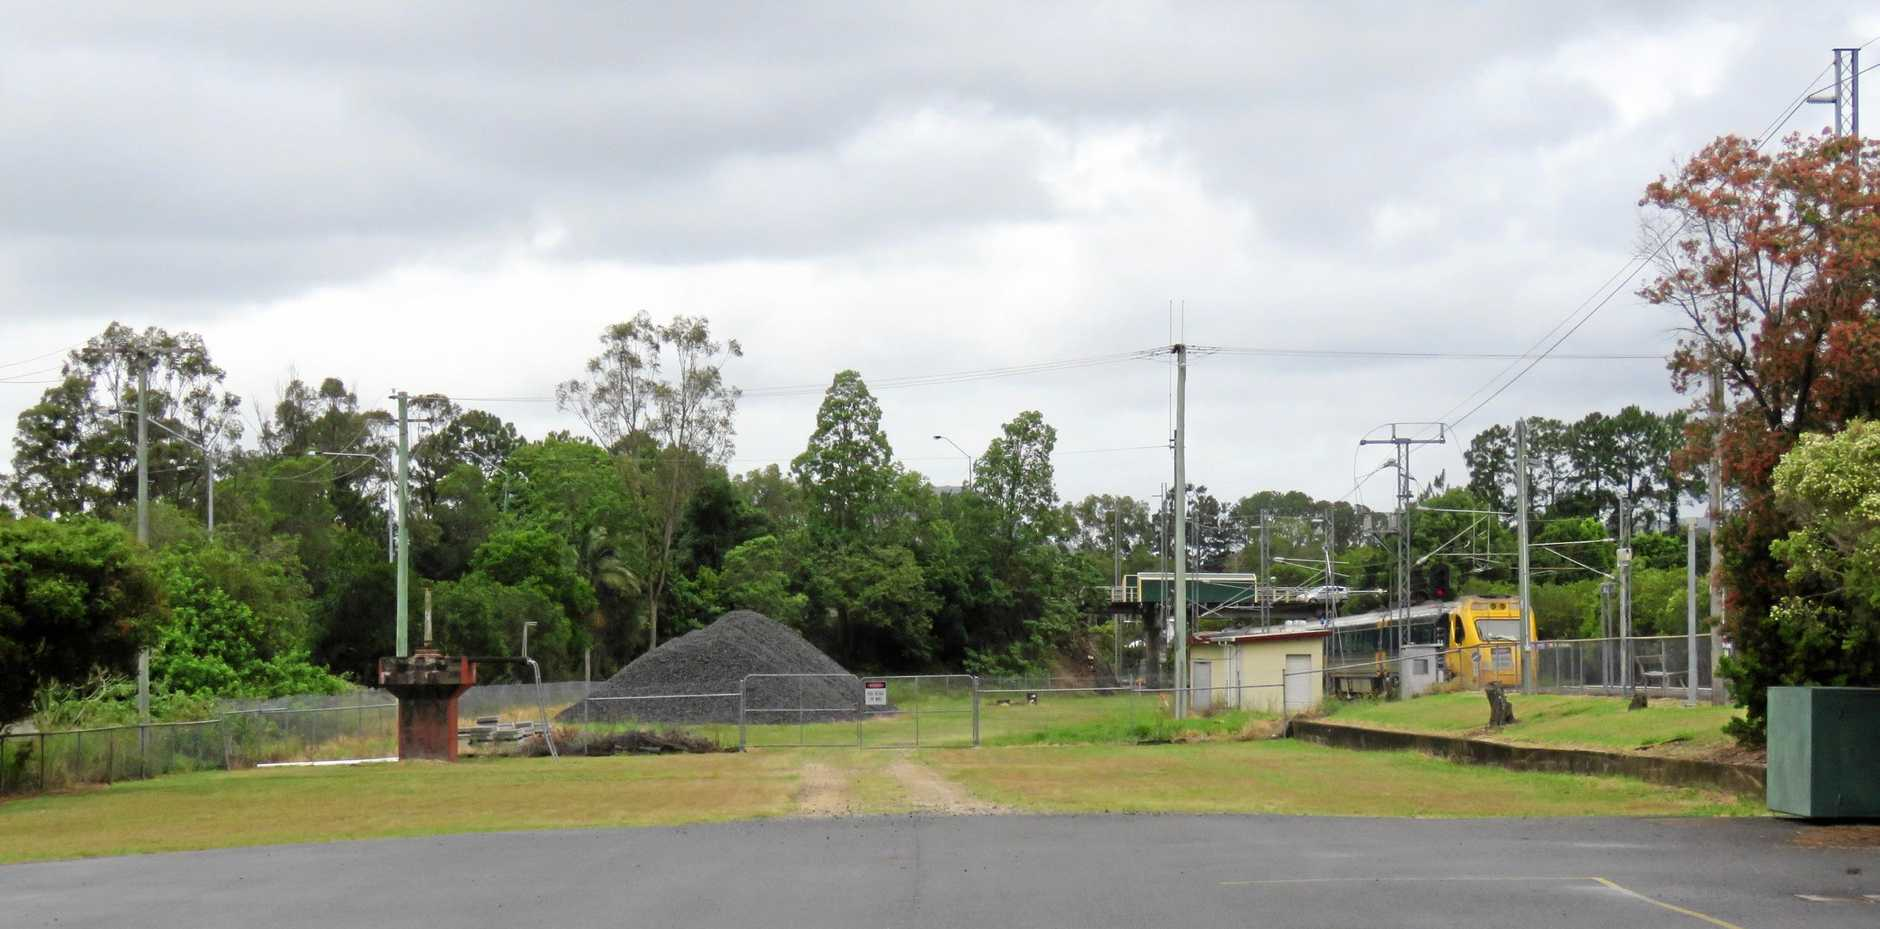 The Queensland Rail-owned land between Elm St and the railway in Cooroy.